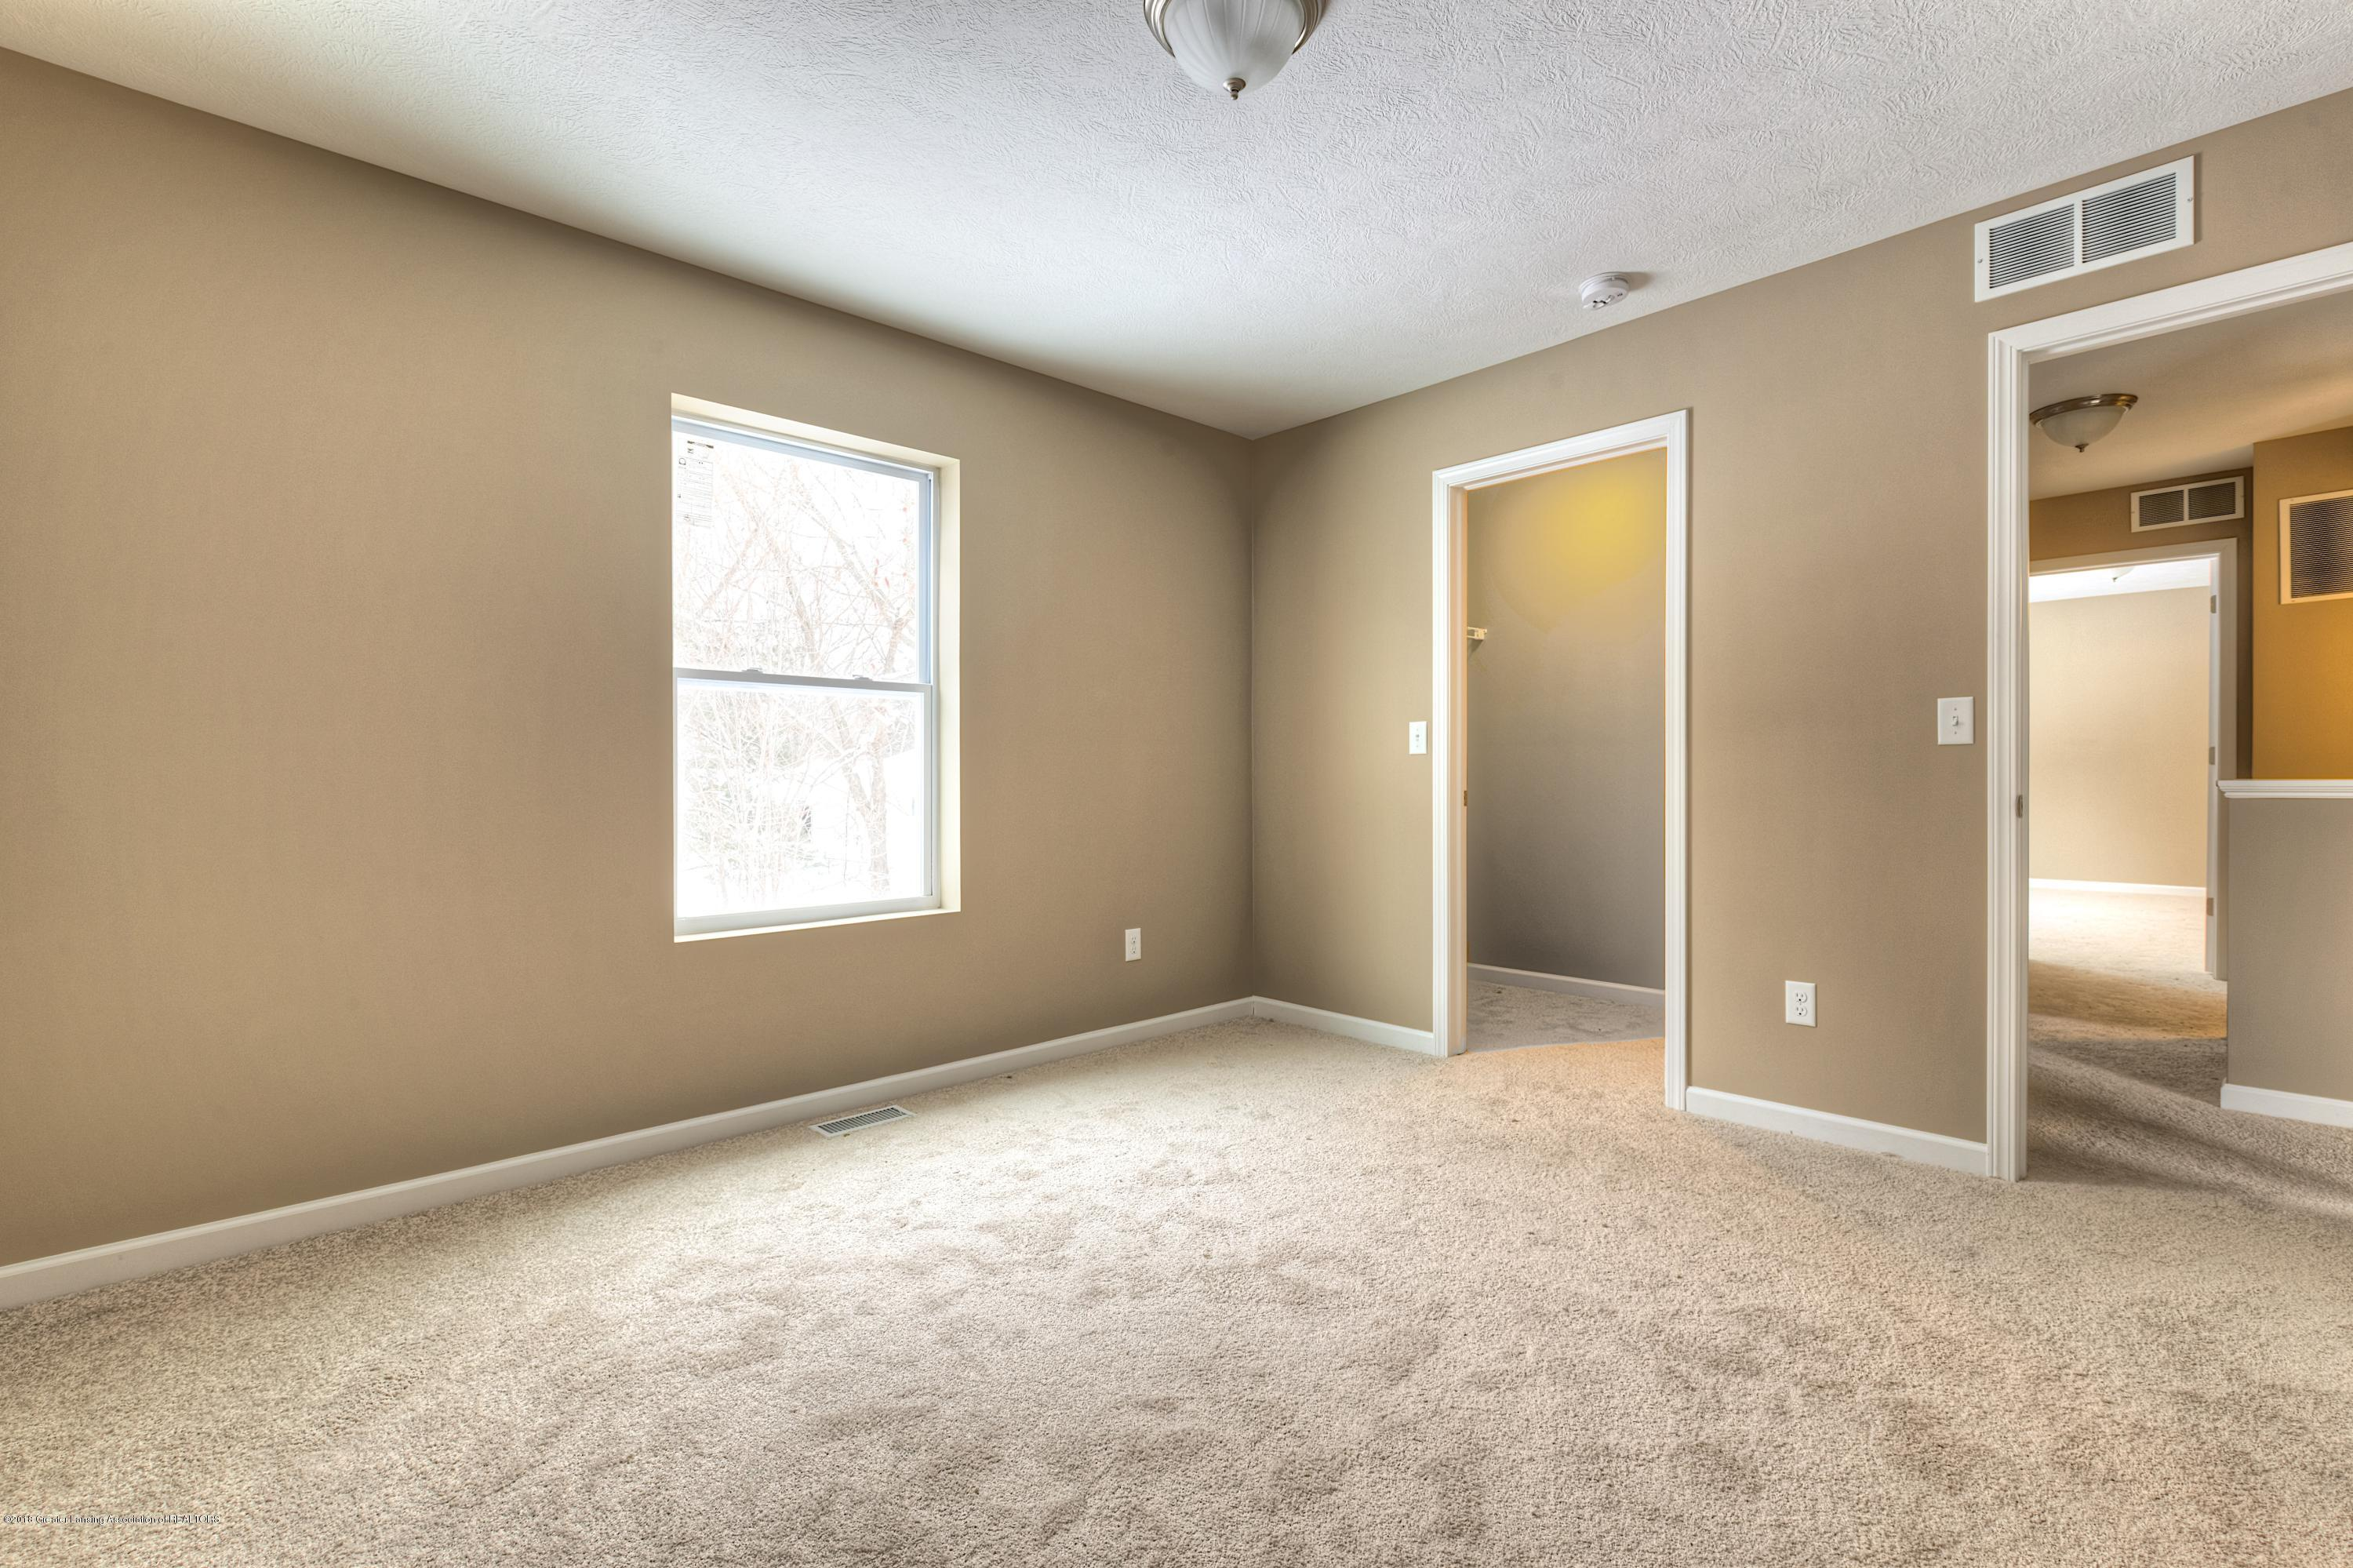 1883 Nightingale Dr - Bed PVF021-E1700 14 - 12